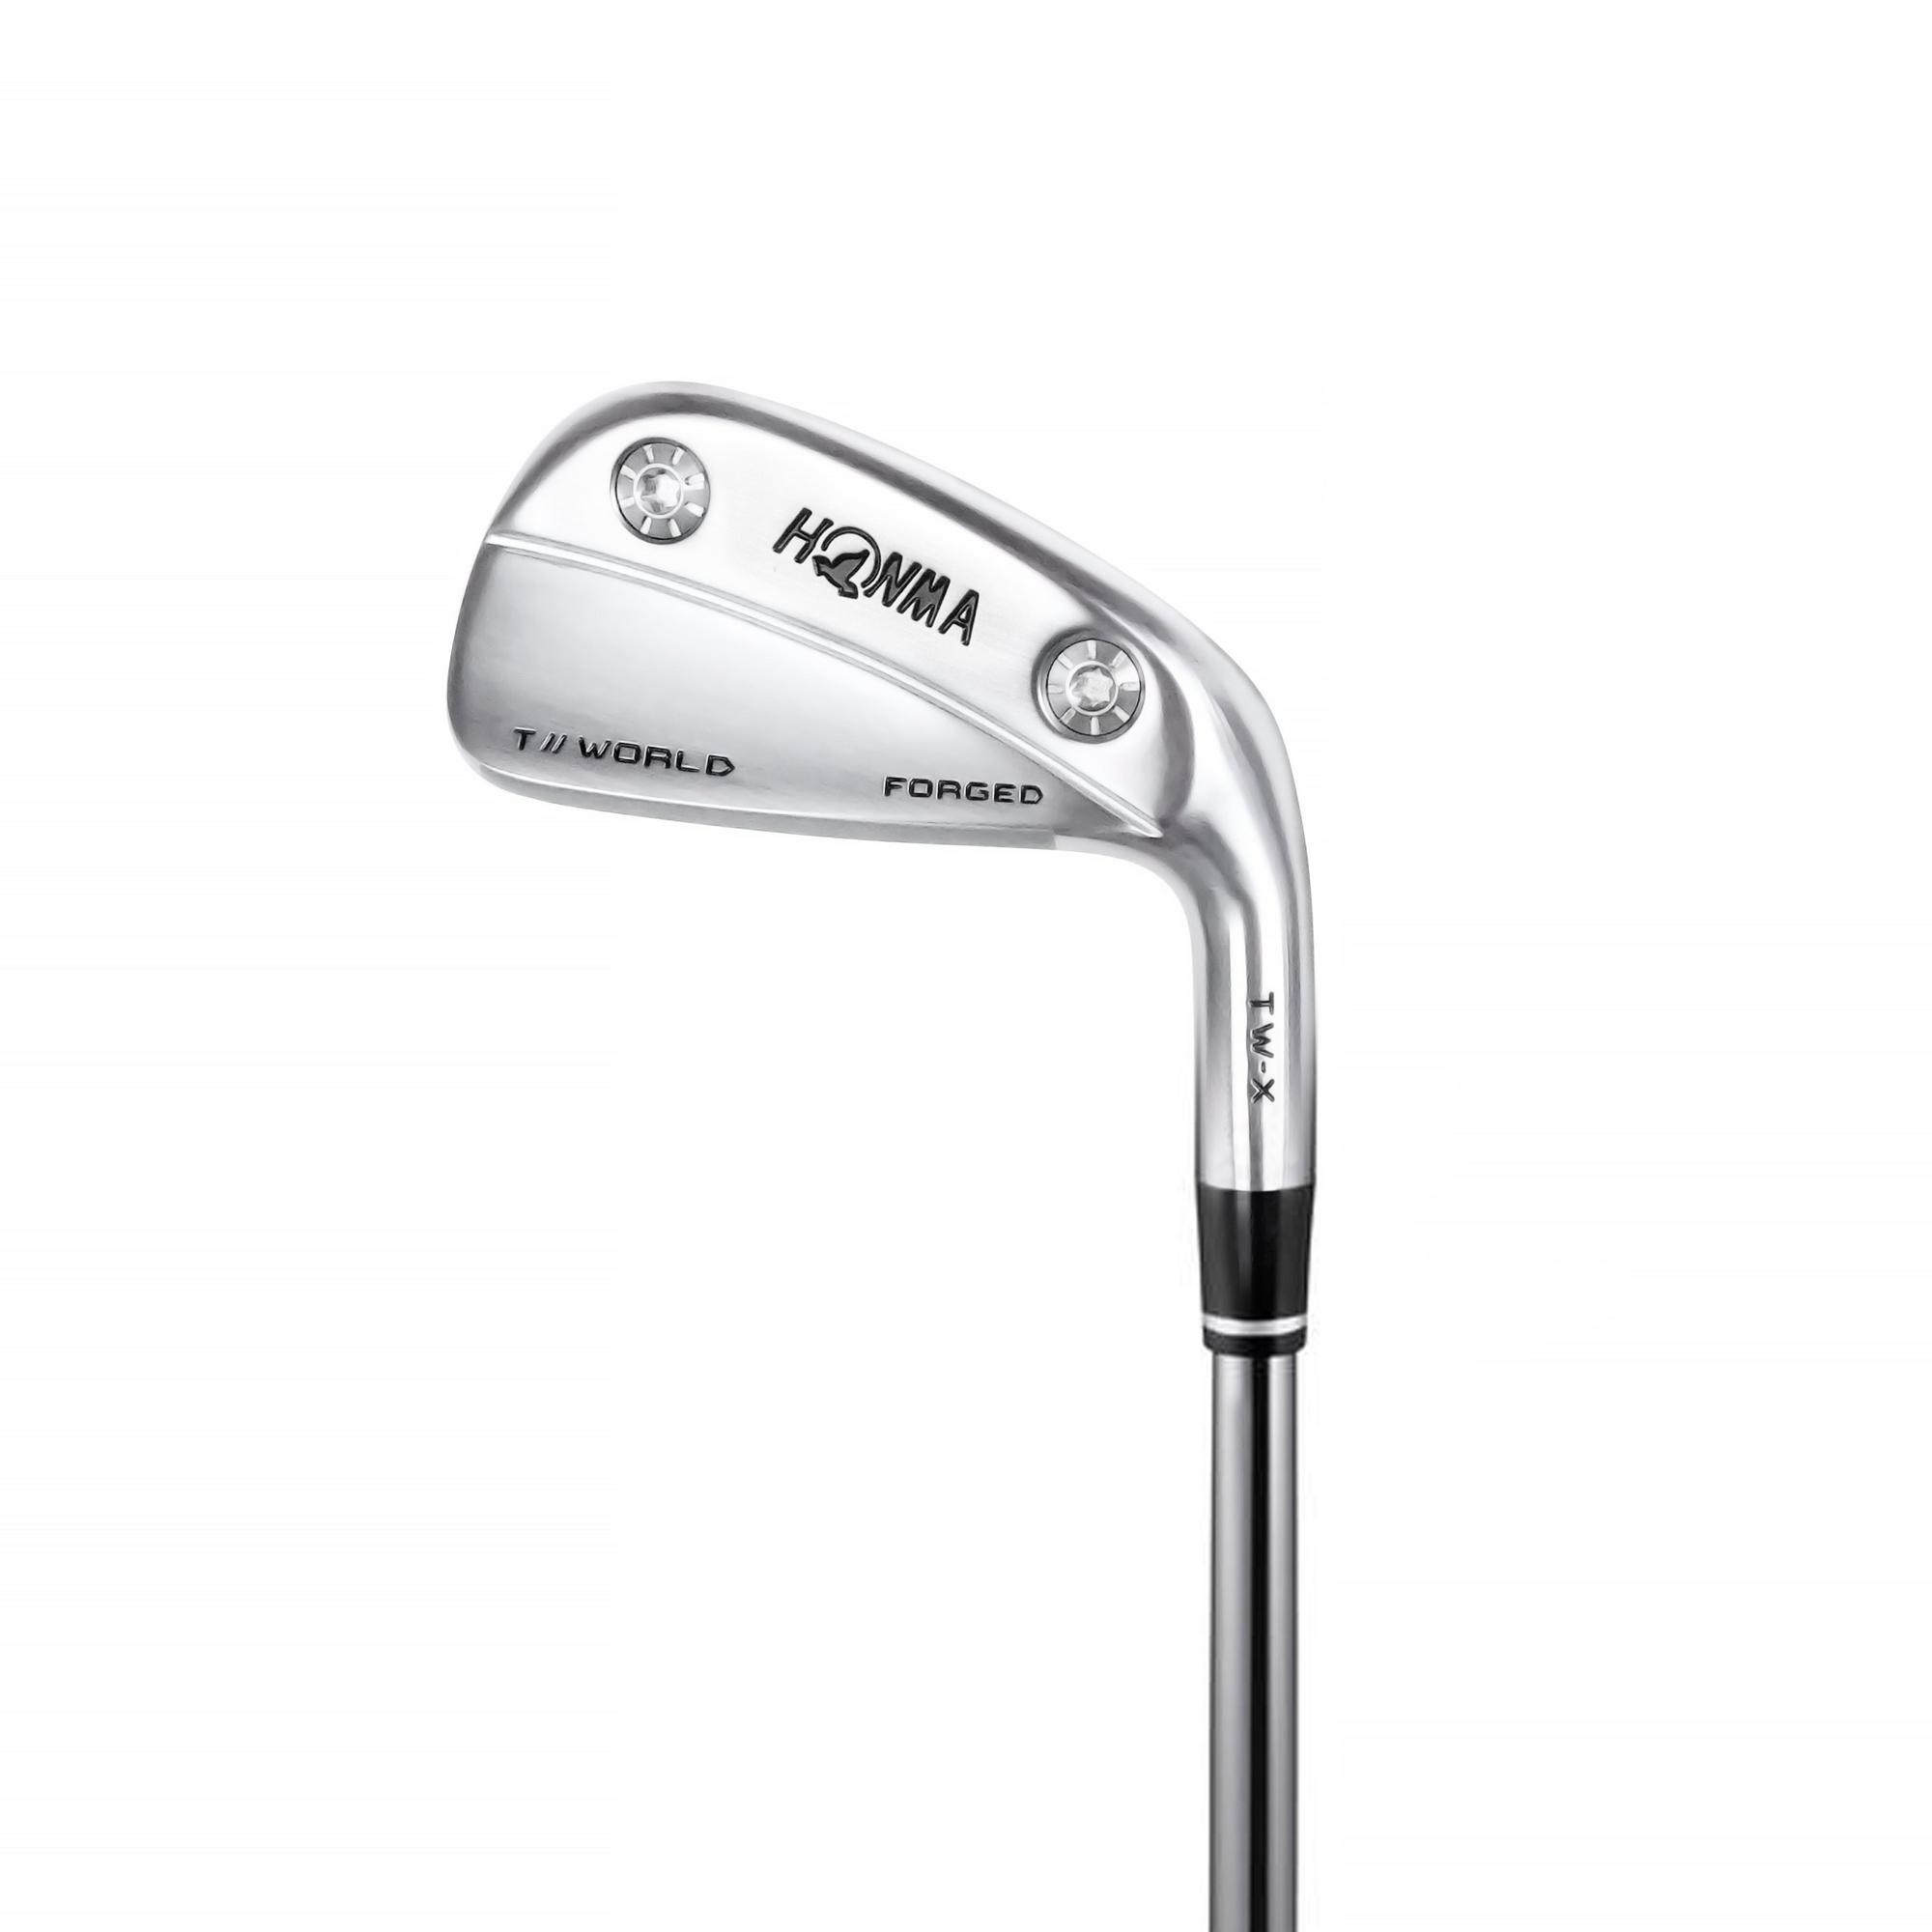 TW-747X 5-11 Iron Set with Graphite Shafts